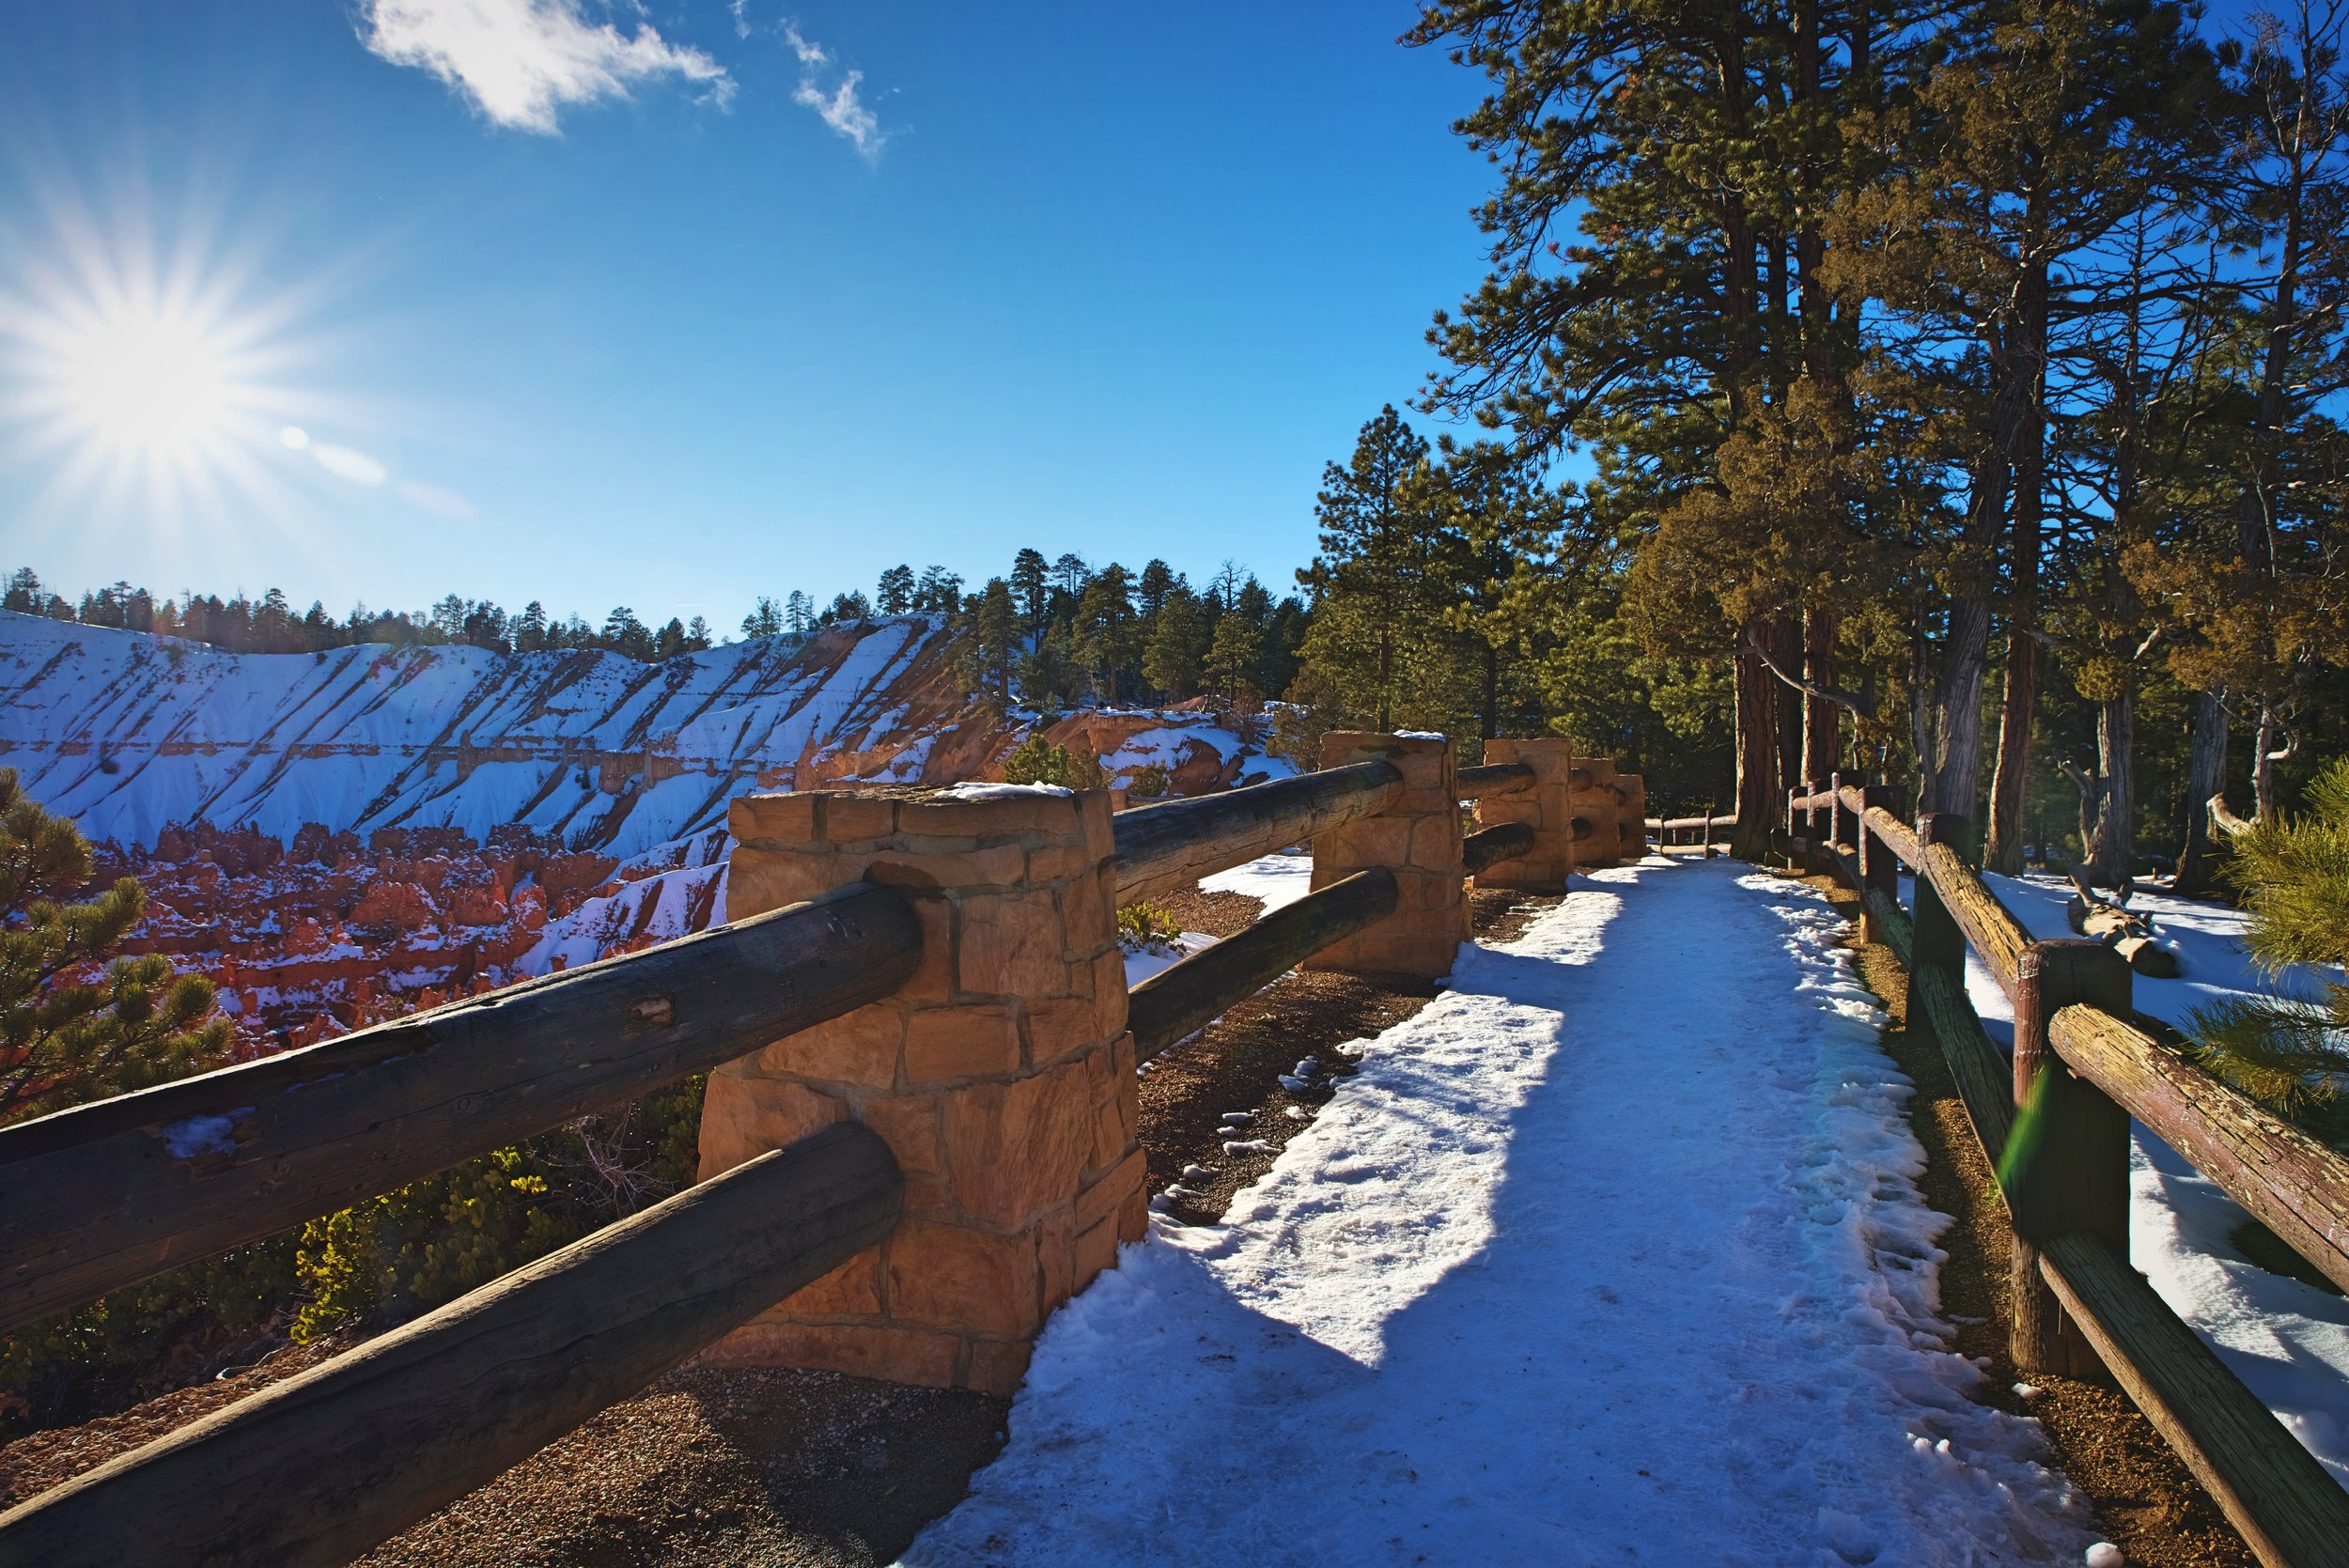 If you're looking for an easier walk, you can walk the accessible trail along the rim between Inspiration Point, Sunset Point, and Sunrise Point.